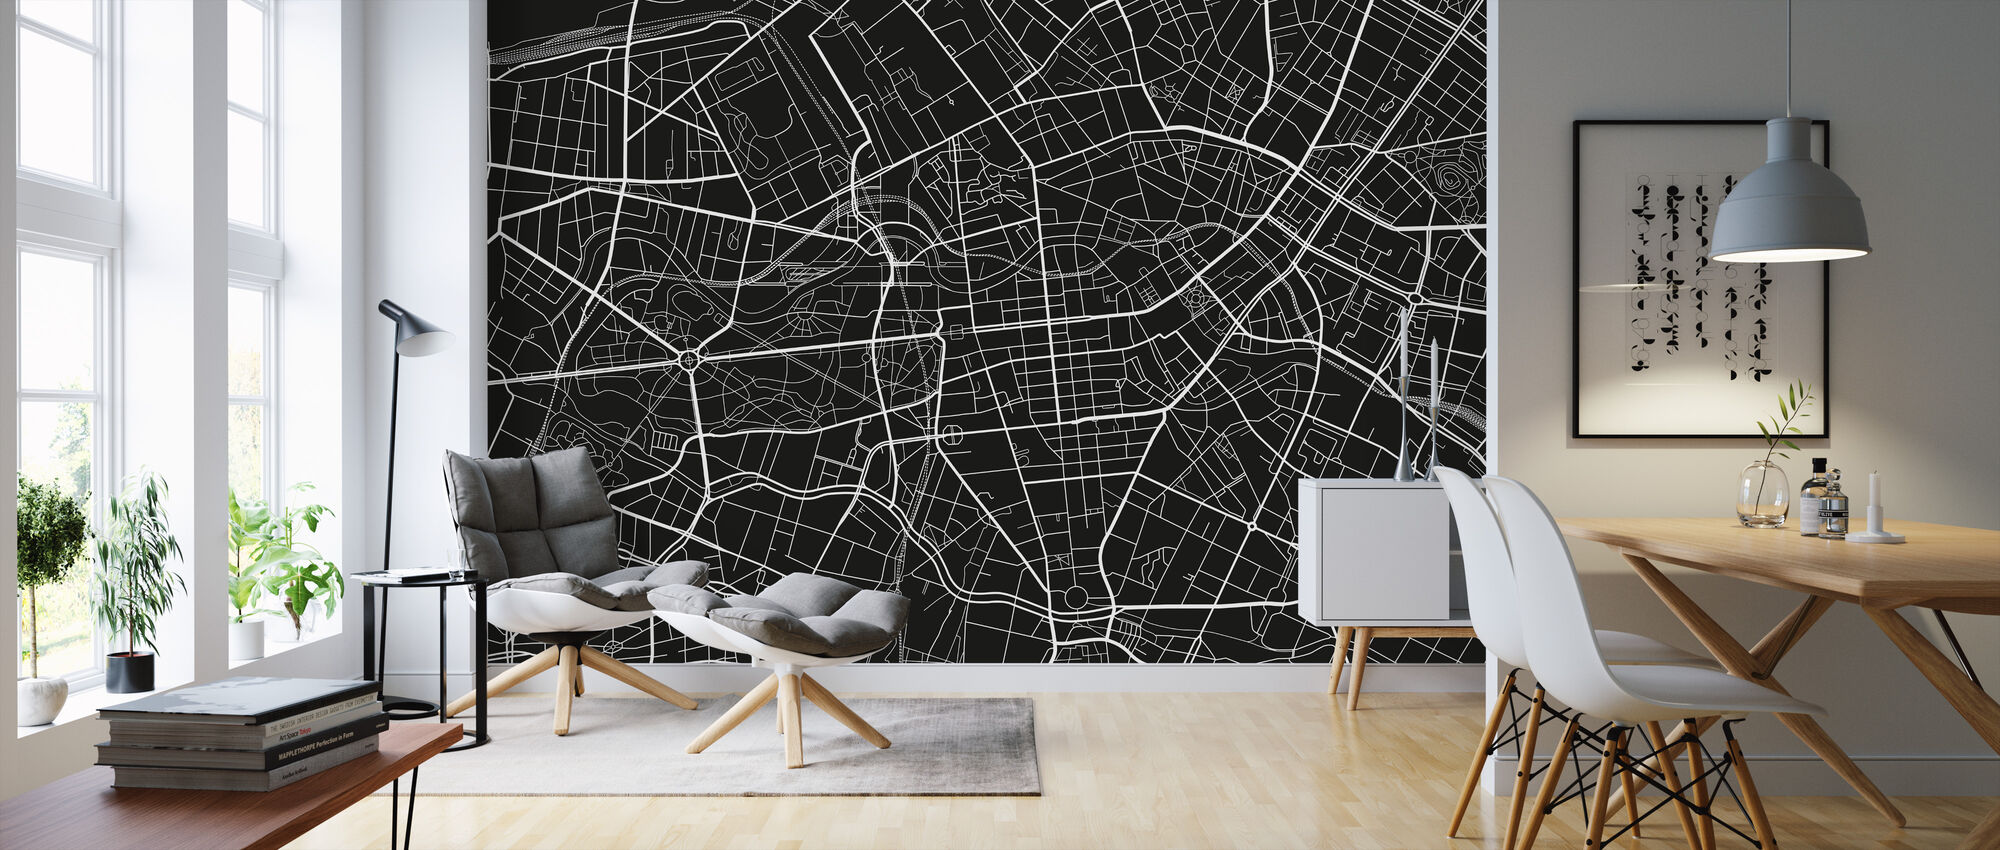 Berlin Map - Wallpaper - Living Room